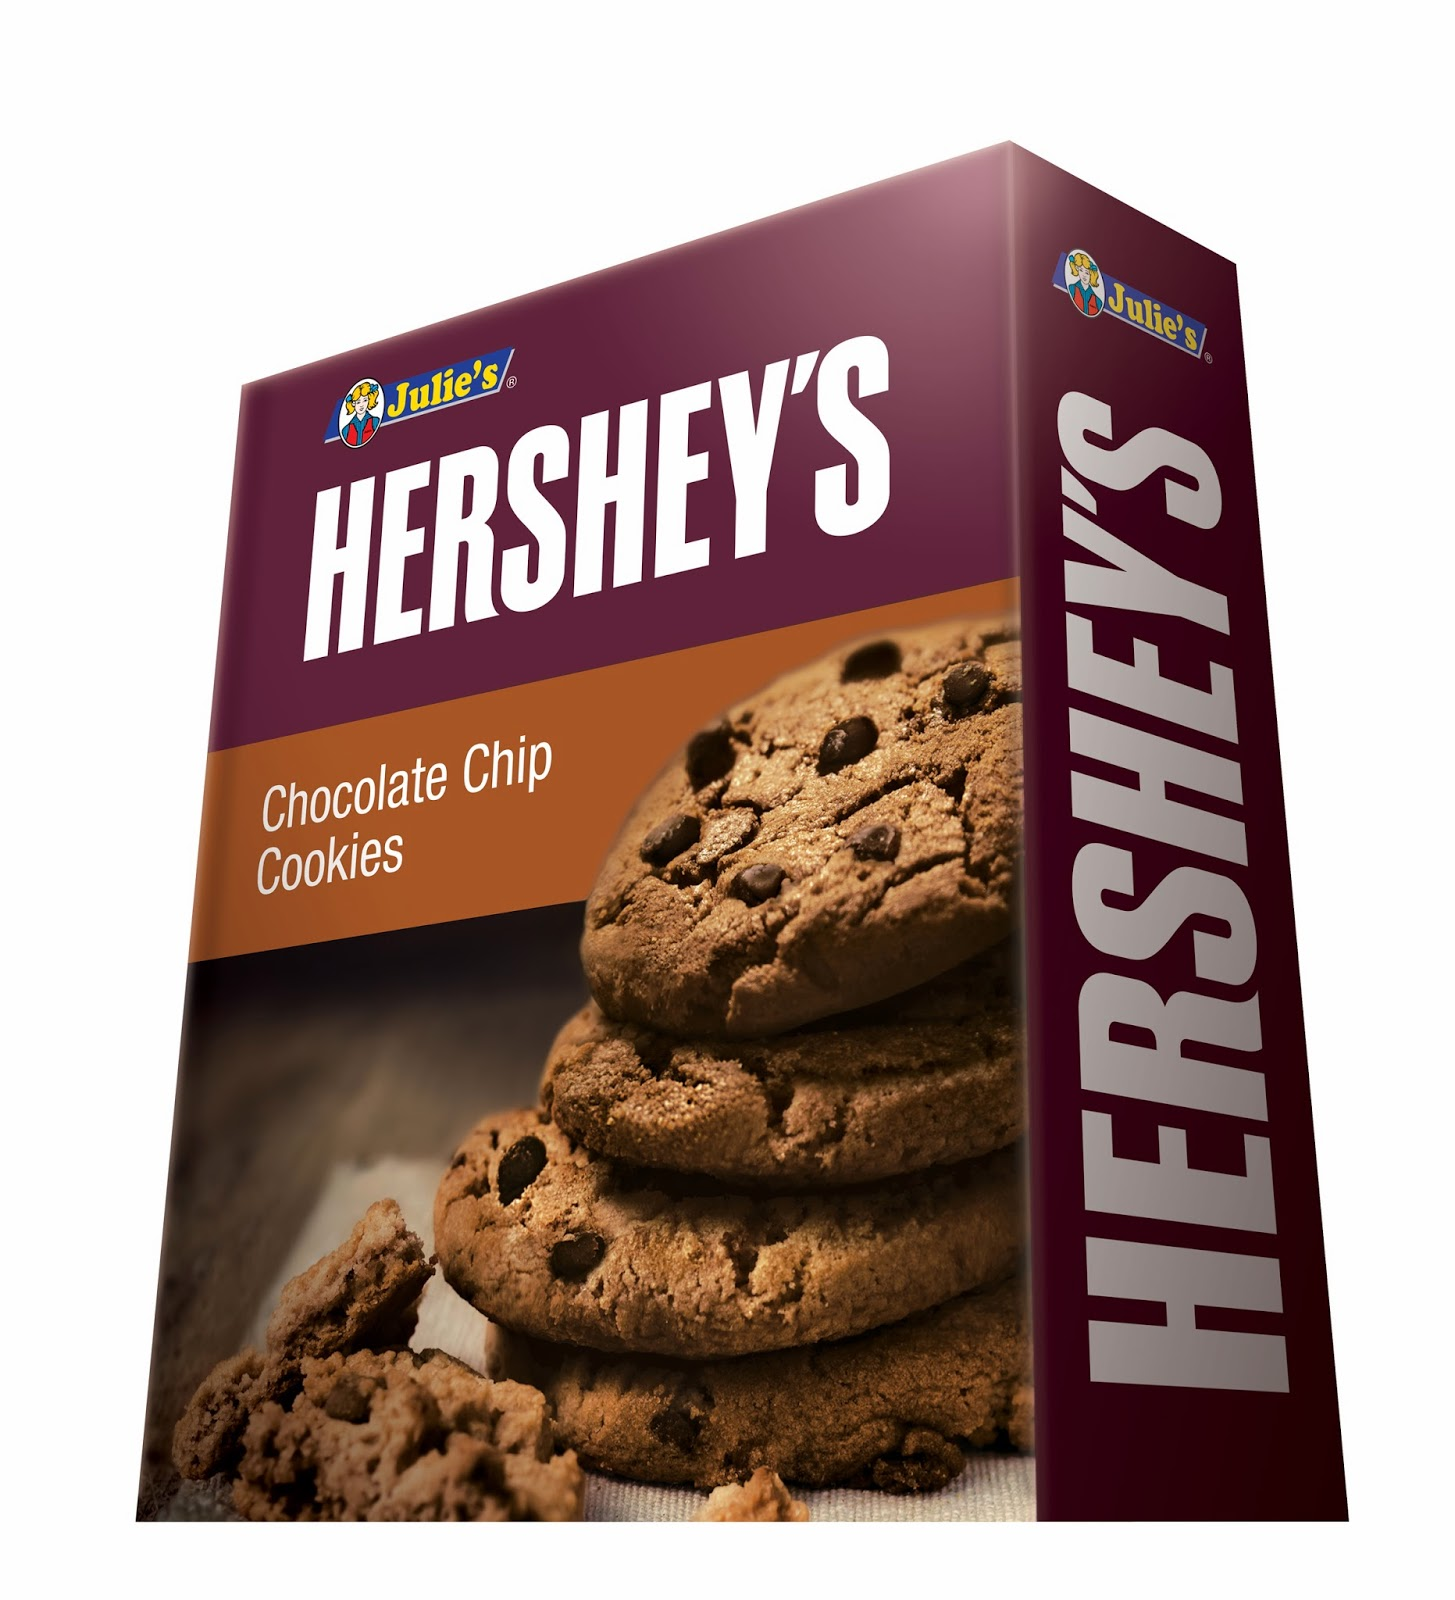 Julie's Hershey's Chocolate Chip Cookies